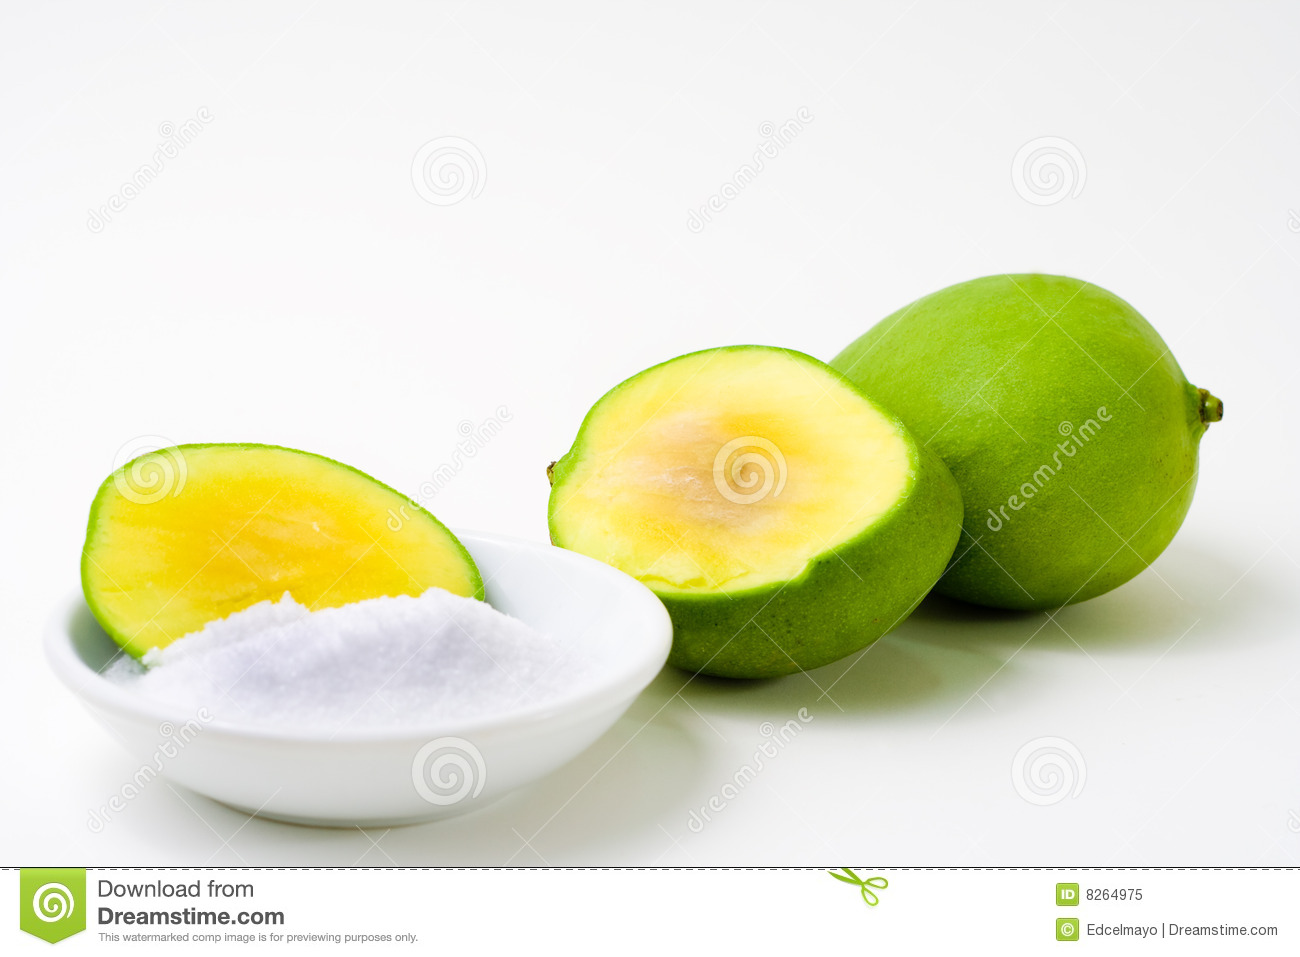 Green Mango Sliced Royalty Free Stock Photo - Image: 8264975